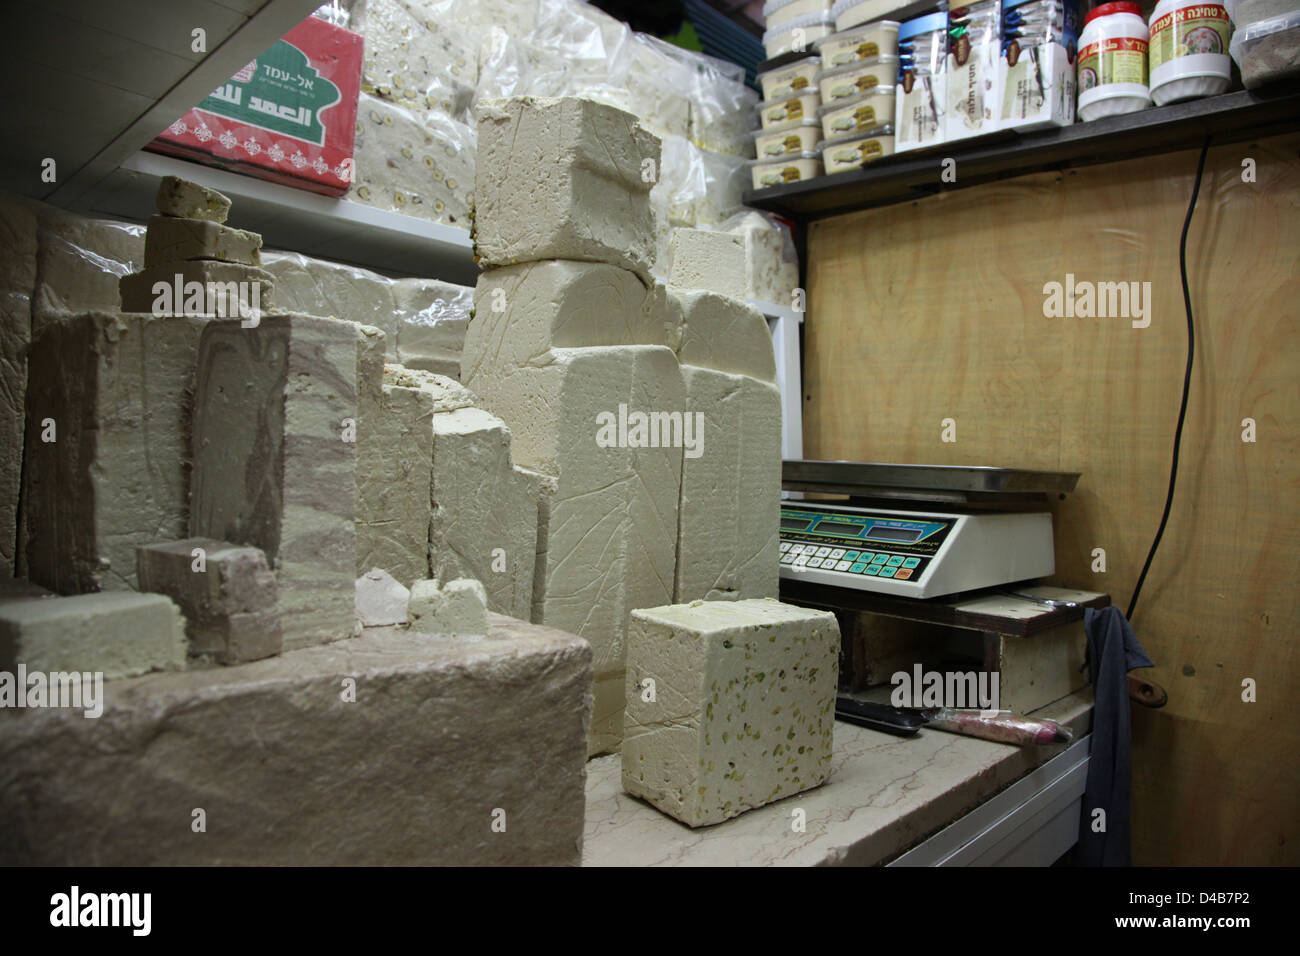 Halva on Sale, Jerusalem old City Market, Israel Stock Photo